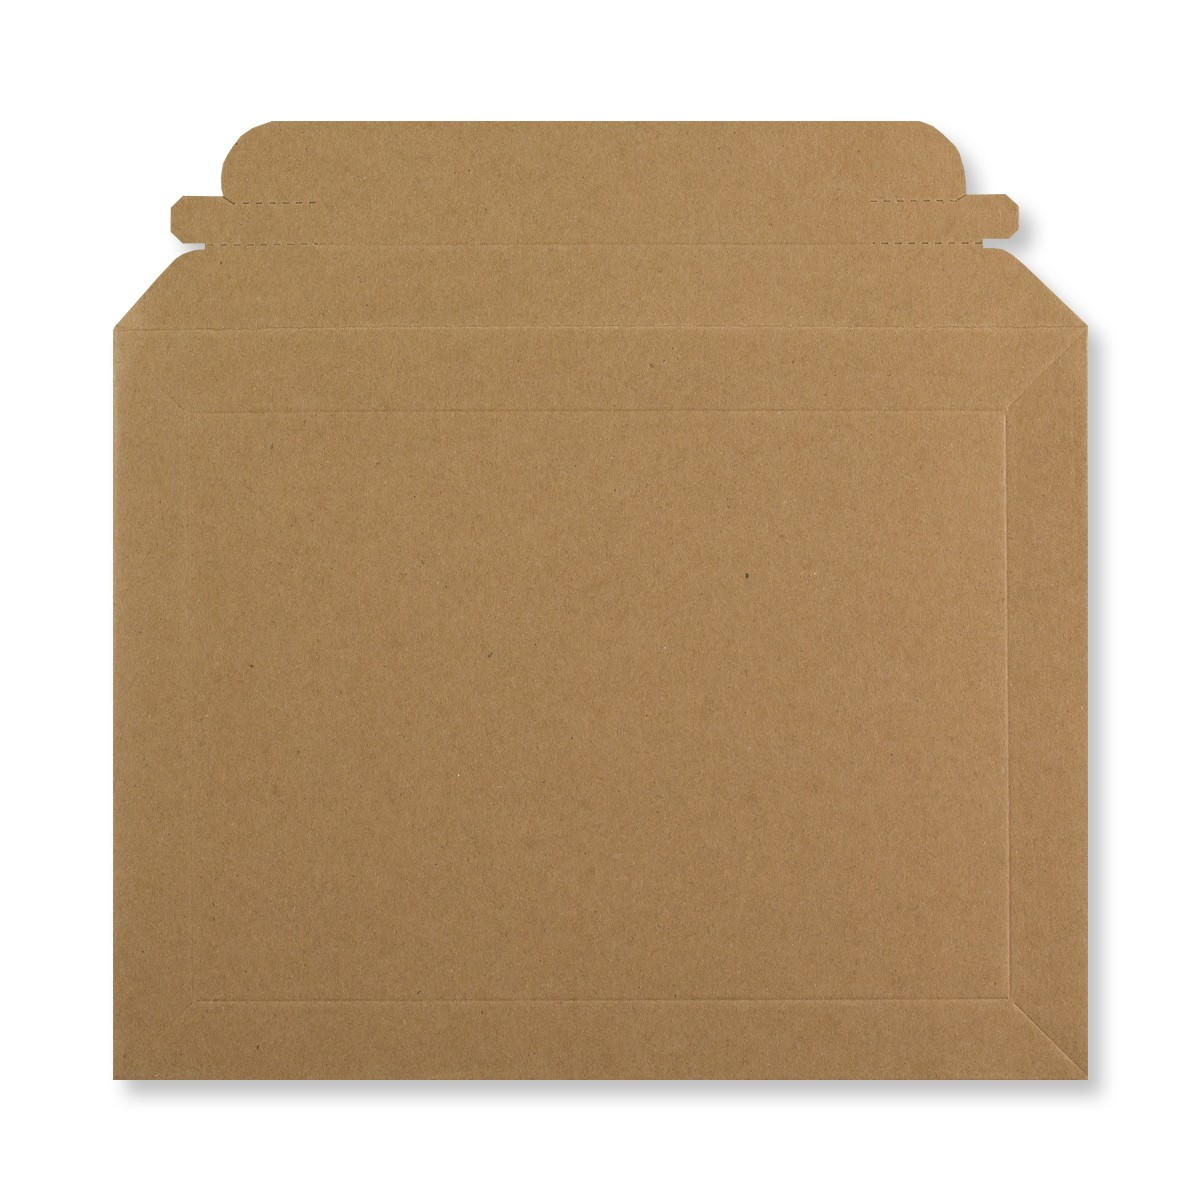 180 x 235mm CAPACITY BOOK MAILERS 300GSM